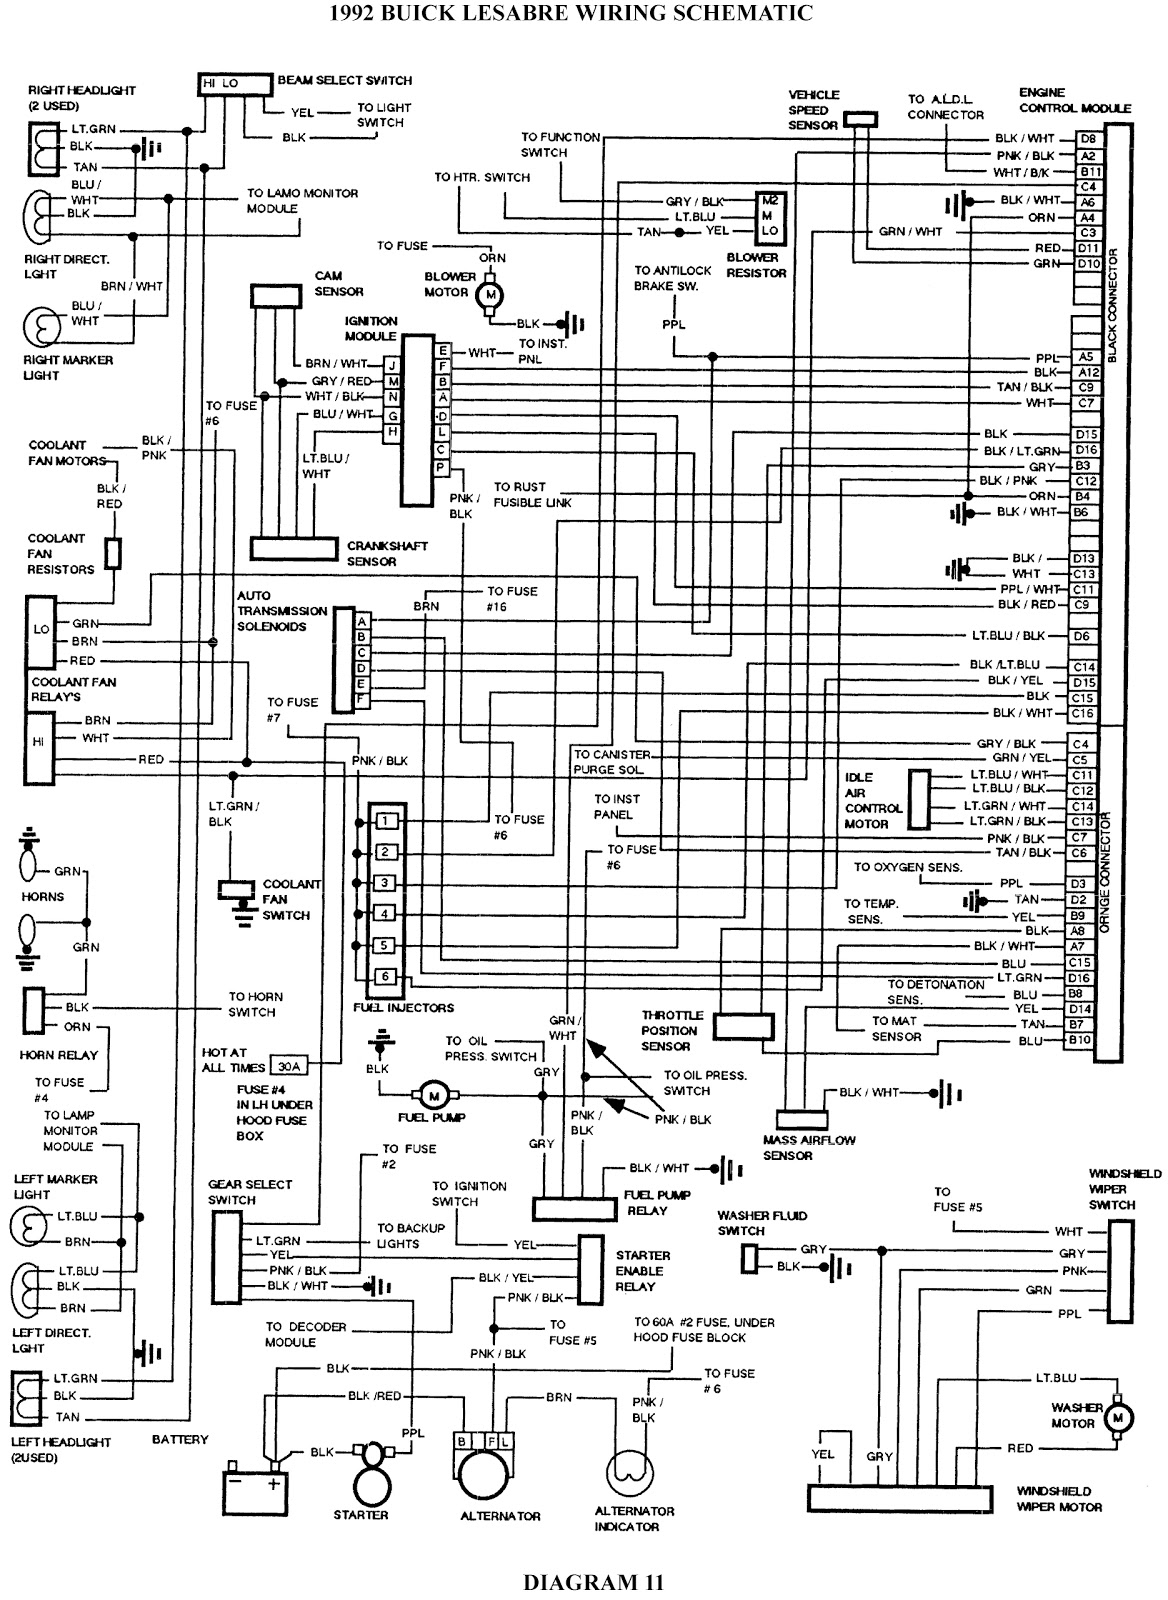 002 1993 buick roadmaster fuse diagram experts of wiring diagram \u2022